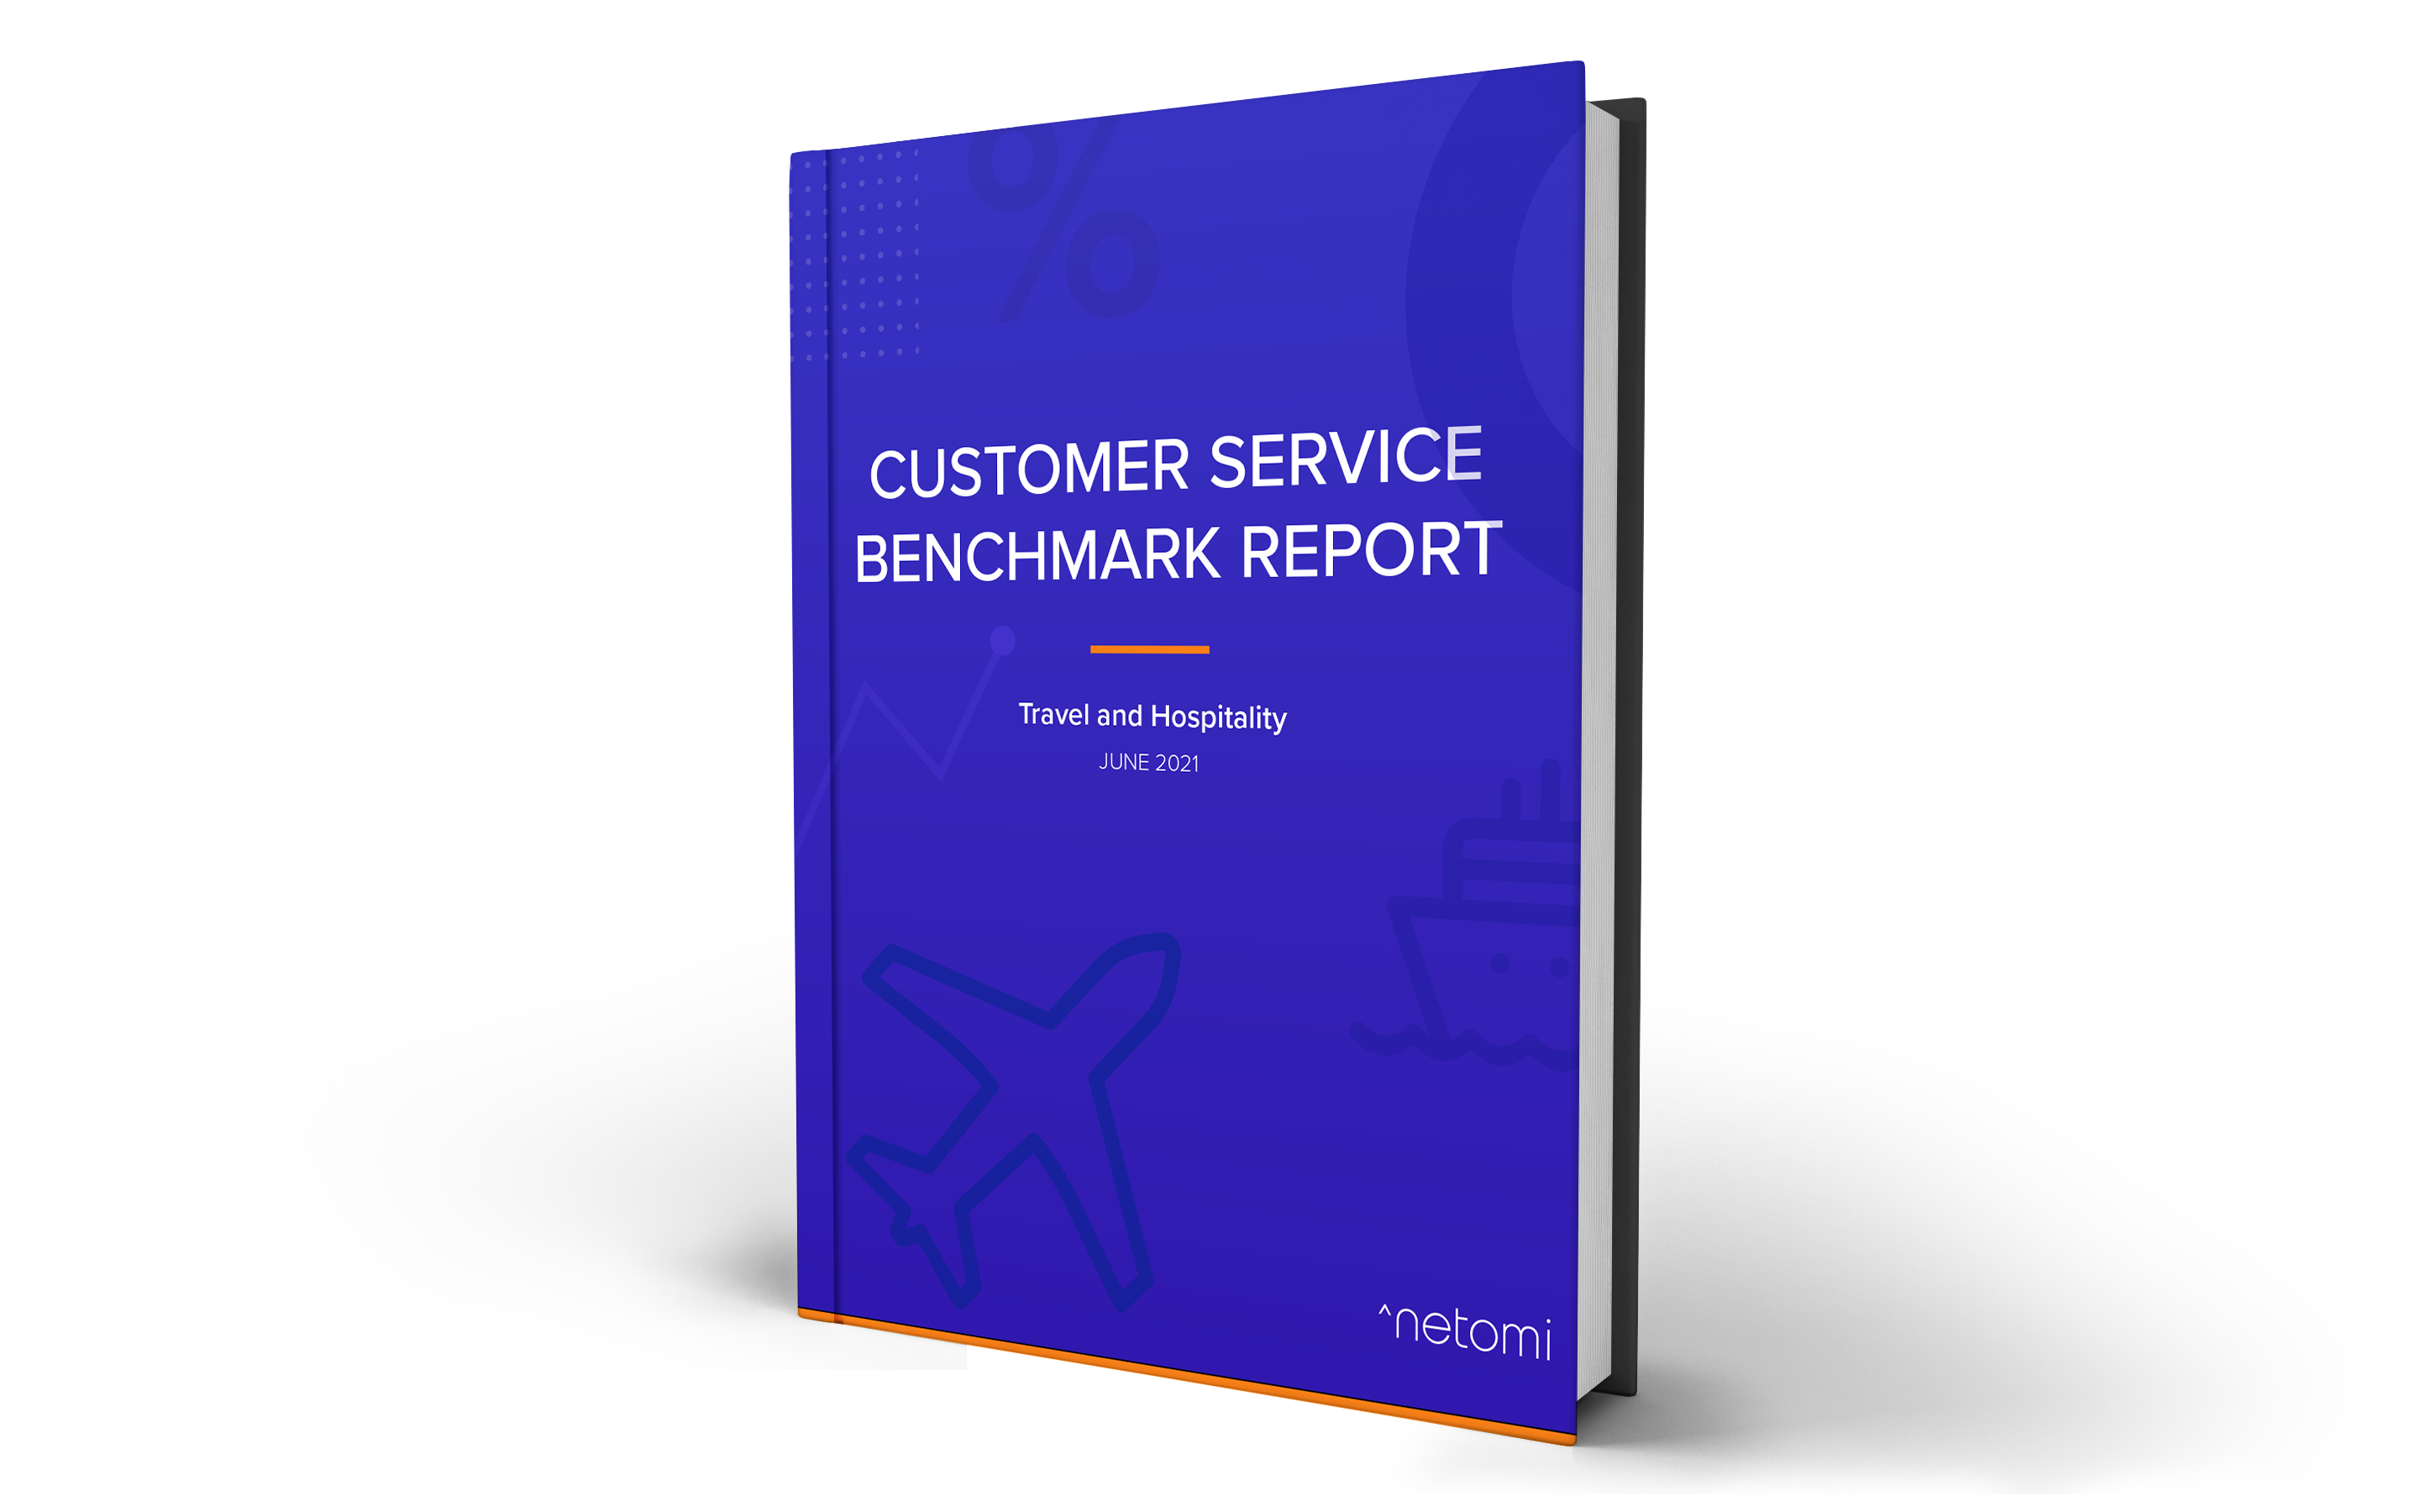 Customer Service Benchmark Report: Travel and Hospitality Edition 2021